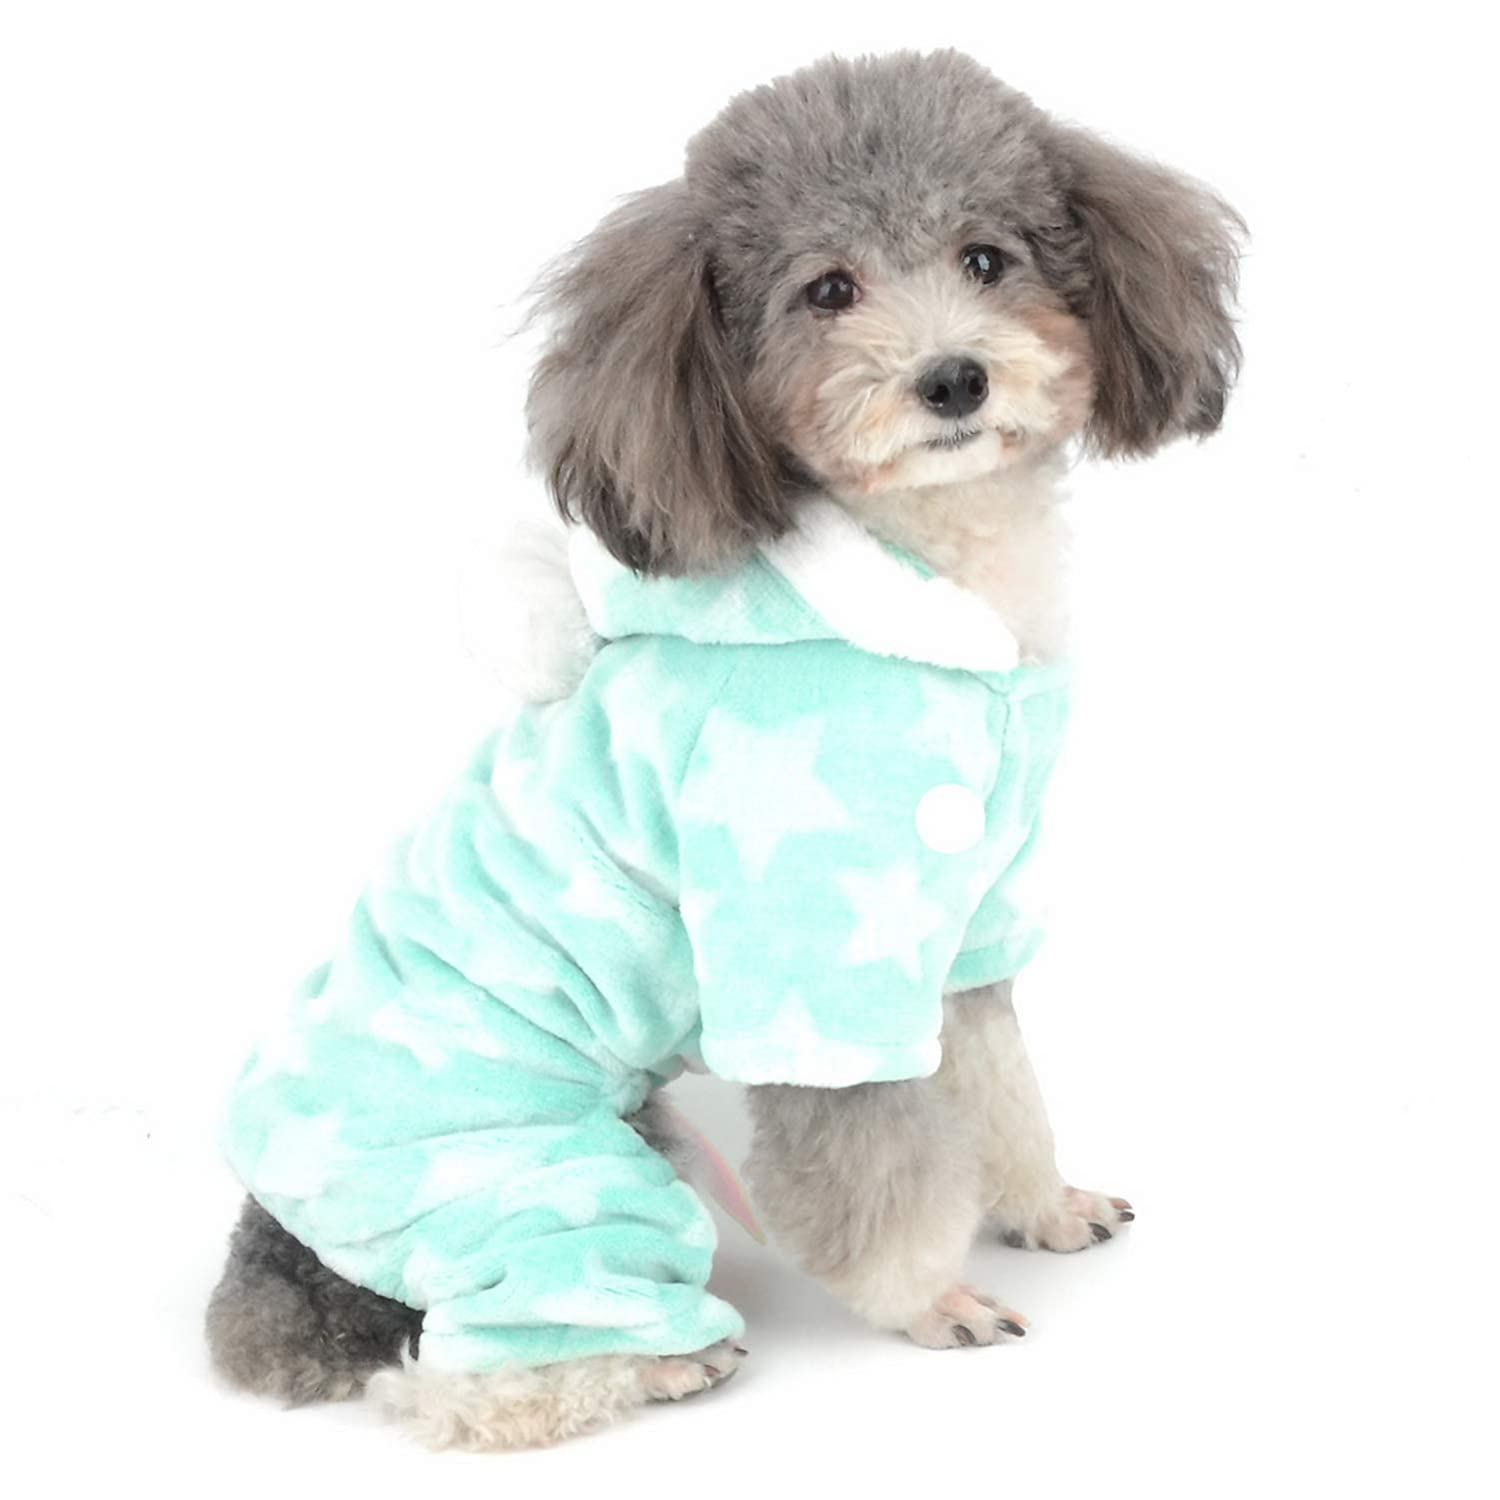 Zunea Small Dog Pajamas Overall Jumpsuit Winter Warm Fleece Puppy Pjs Super Soft Hooded Pyjamas Outfit with Legs Chihuahua Jacket Coat Clothes Christmas Costume for Girls Boys Pet Cat Gray XL